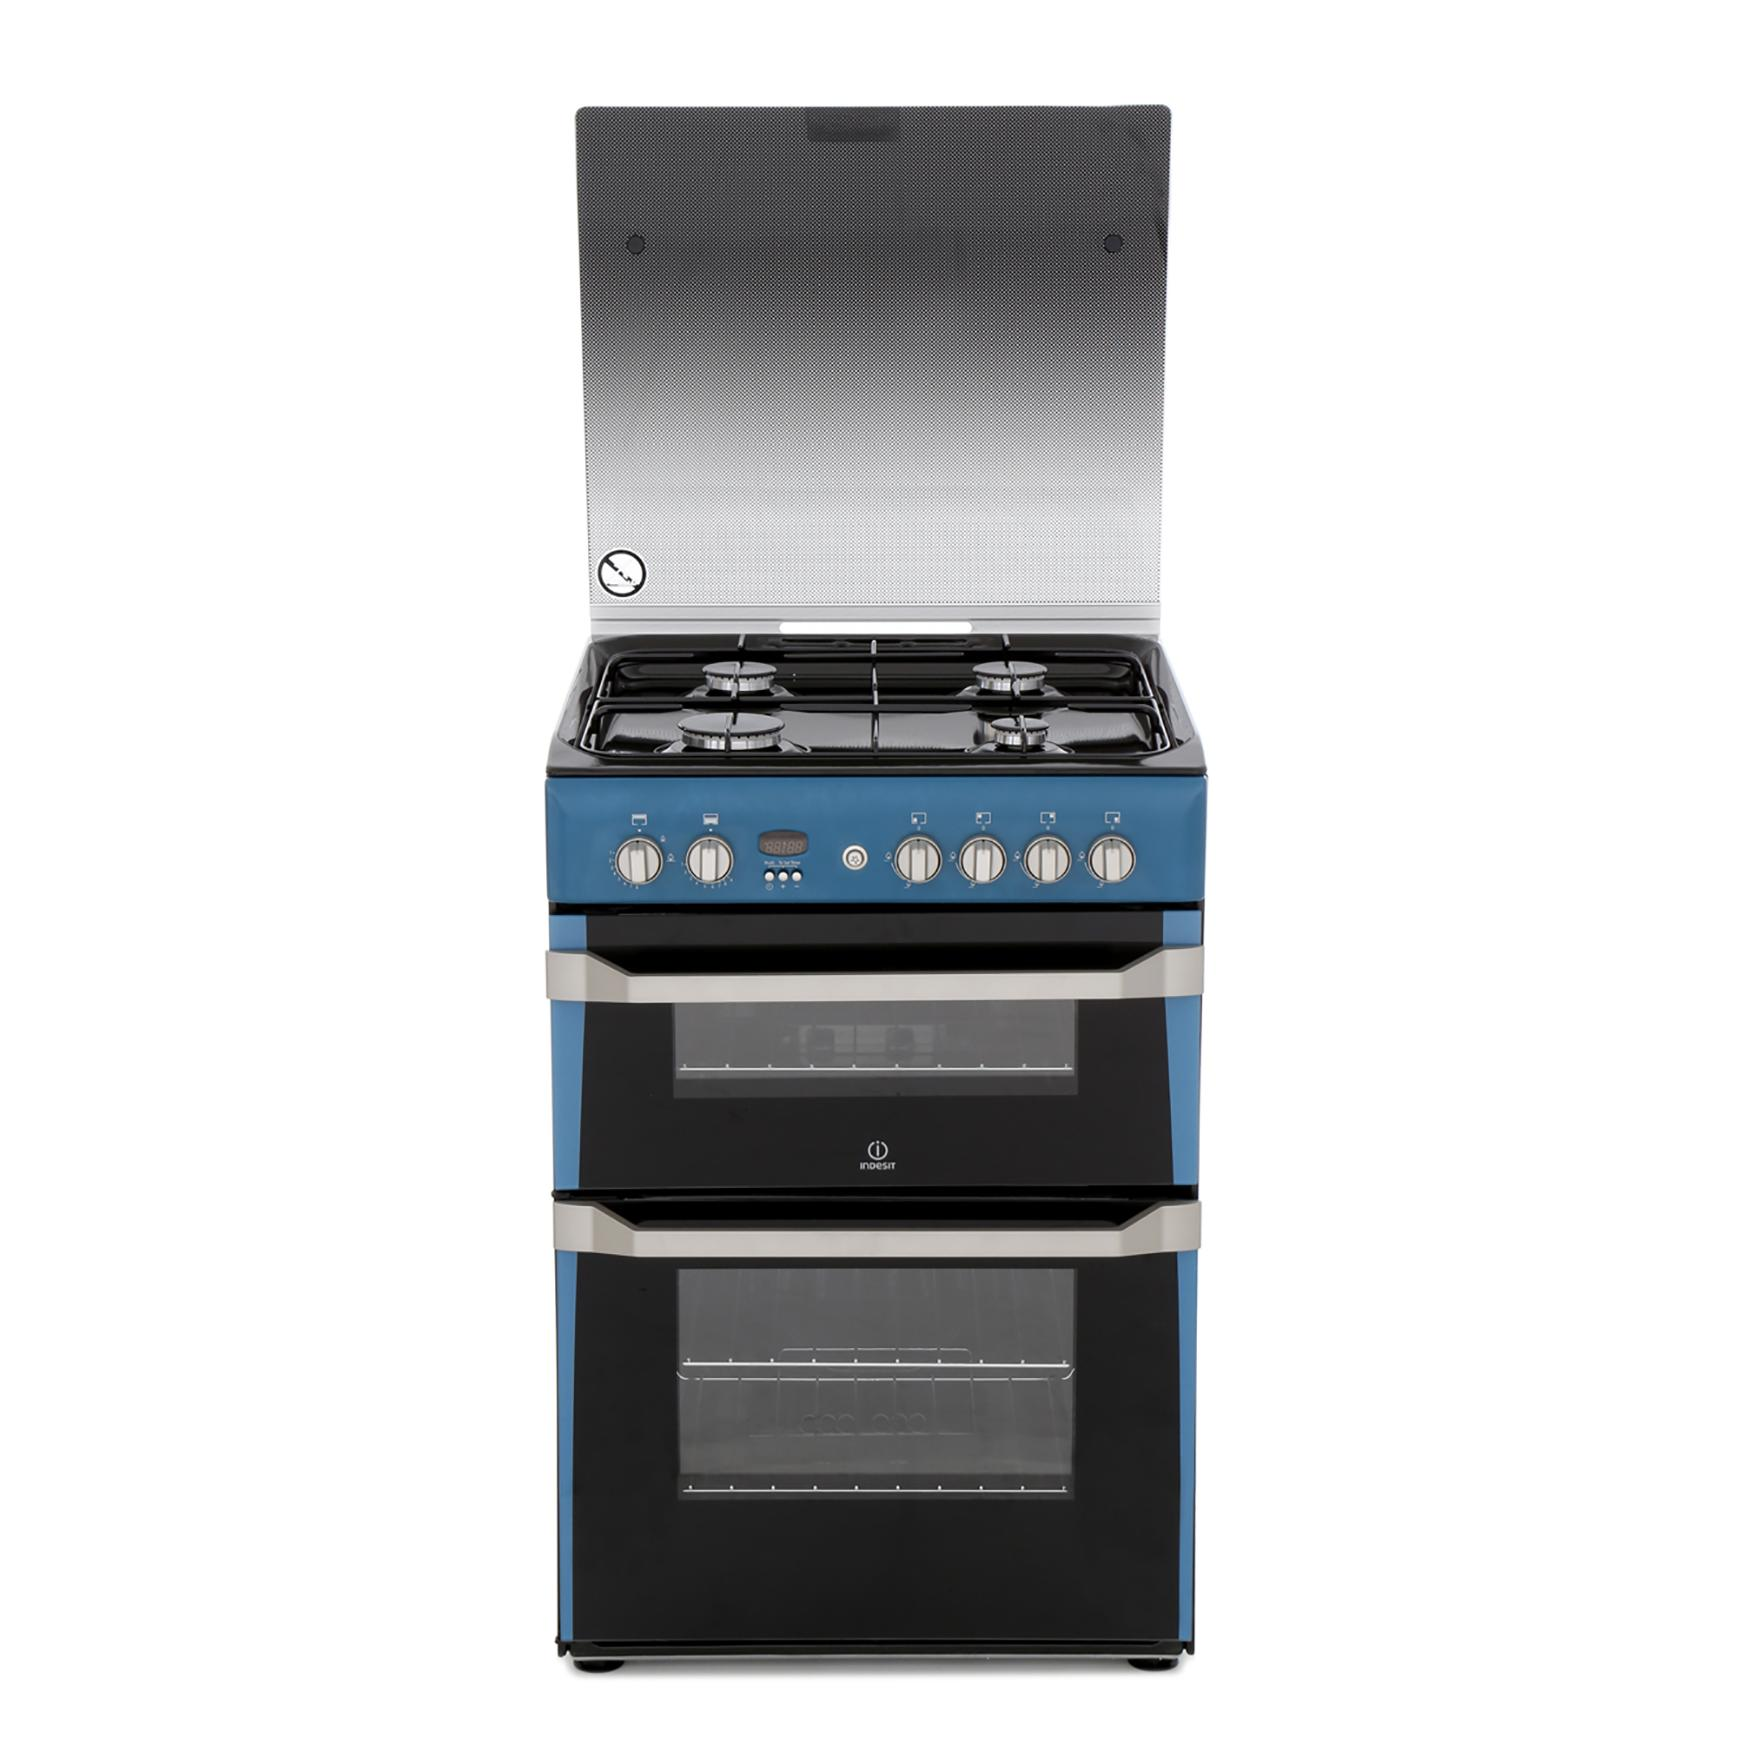 Indesit ID60G2N Gas Cooker with Double Oven